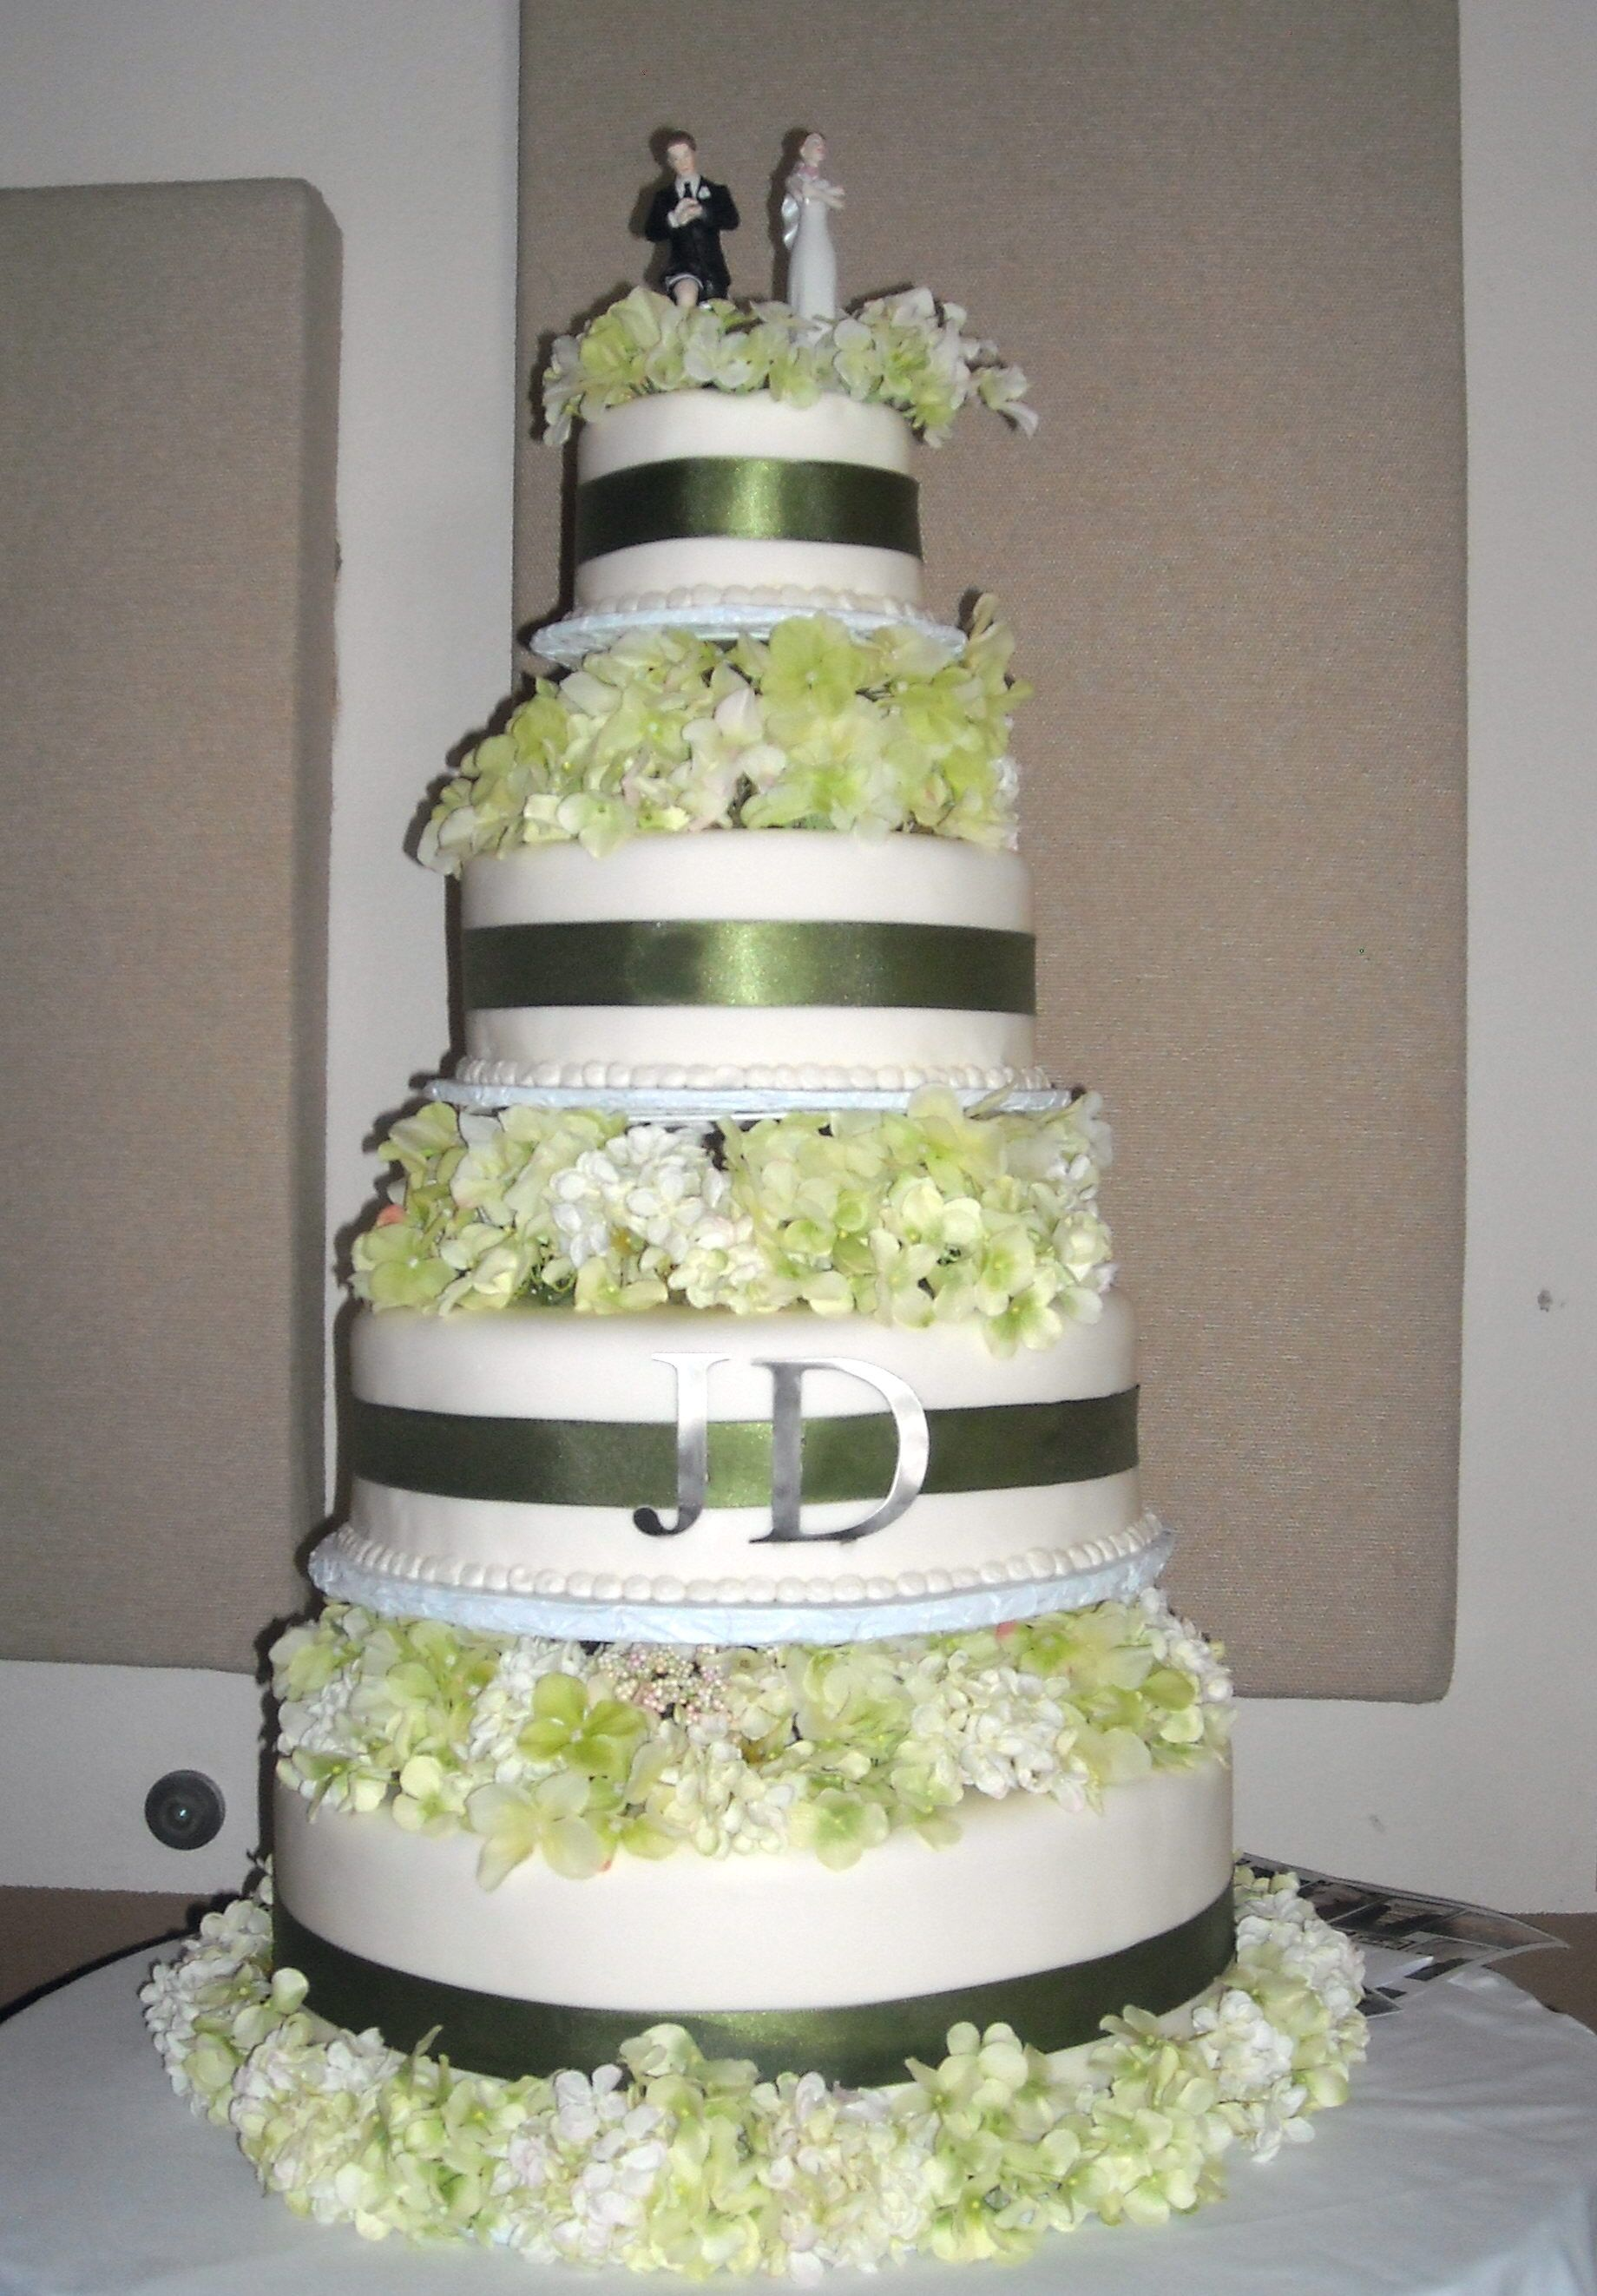 my web site: www.beckysweddingcakes.com    Like me on Facebook: https://www.facebook.com/pages/Beckys-Wedding-Cakes/108414792581148?ref=hl#